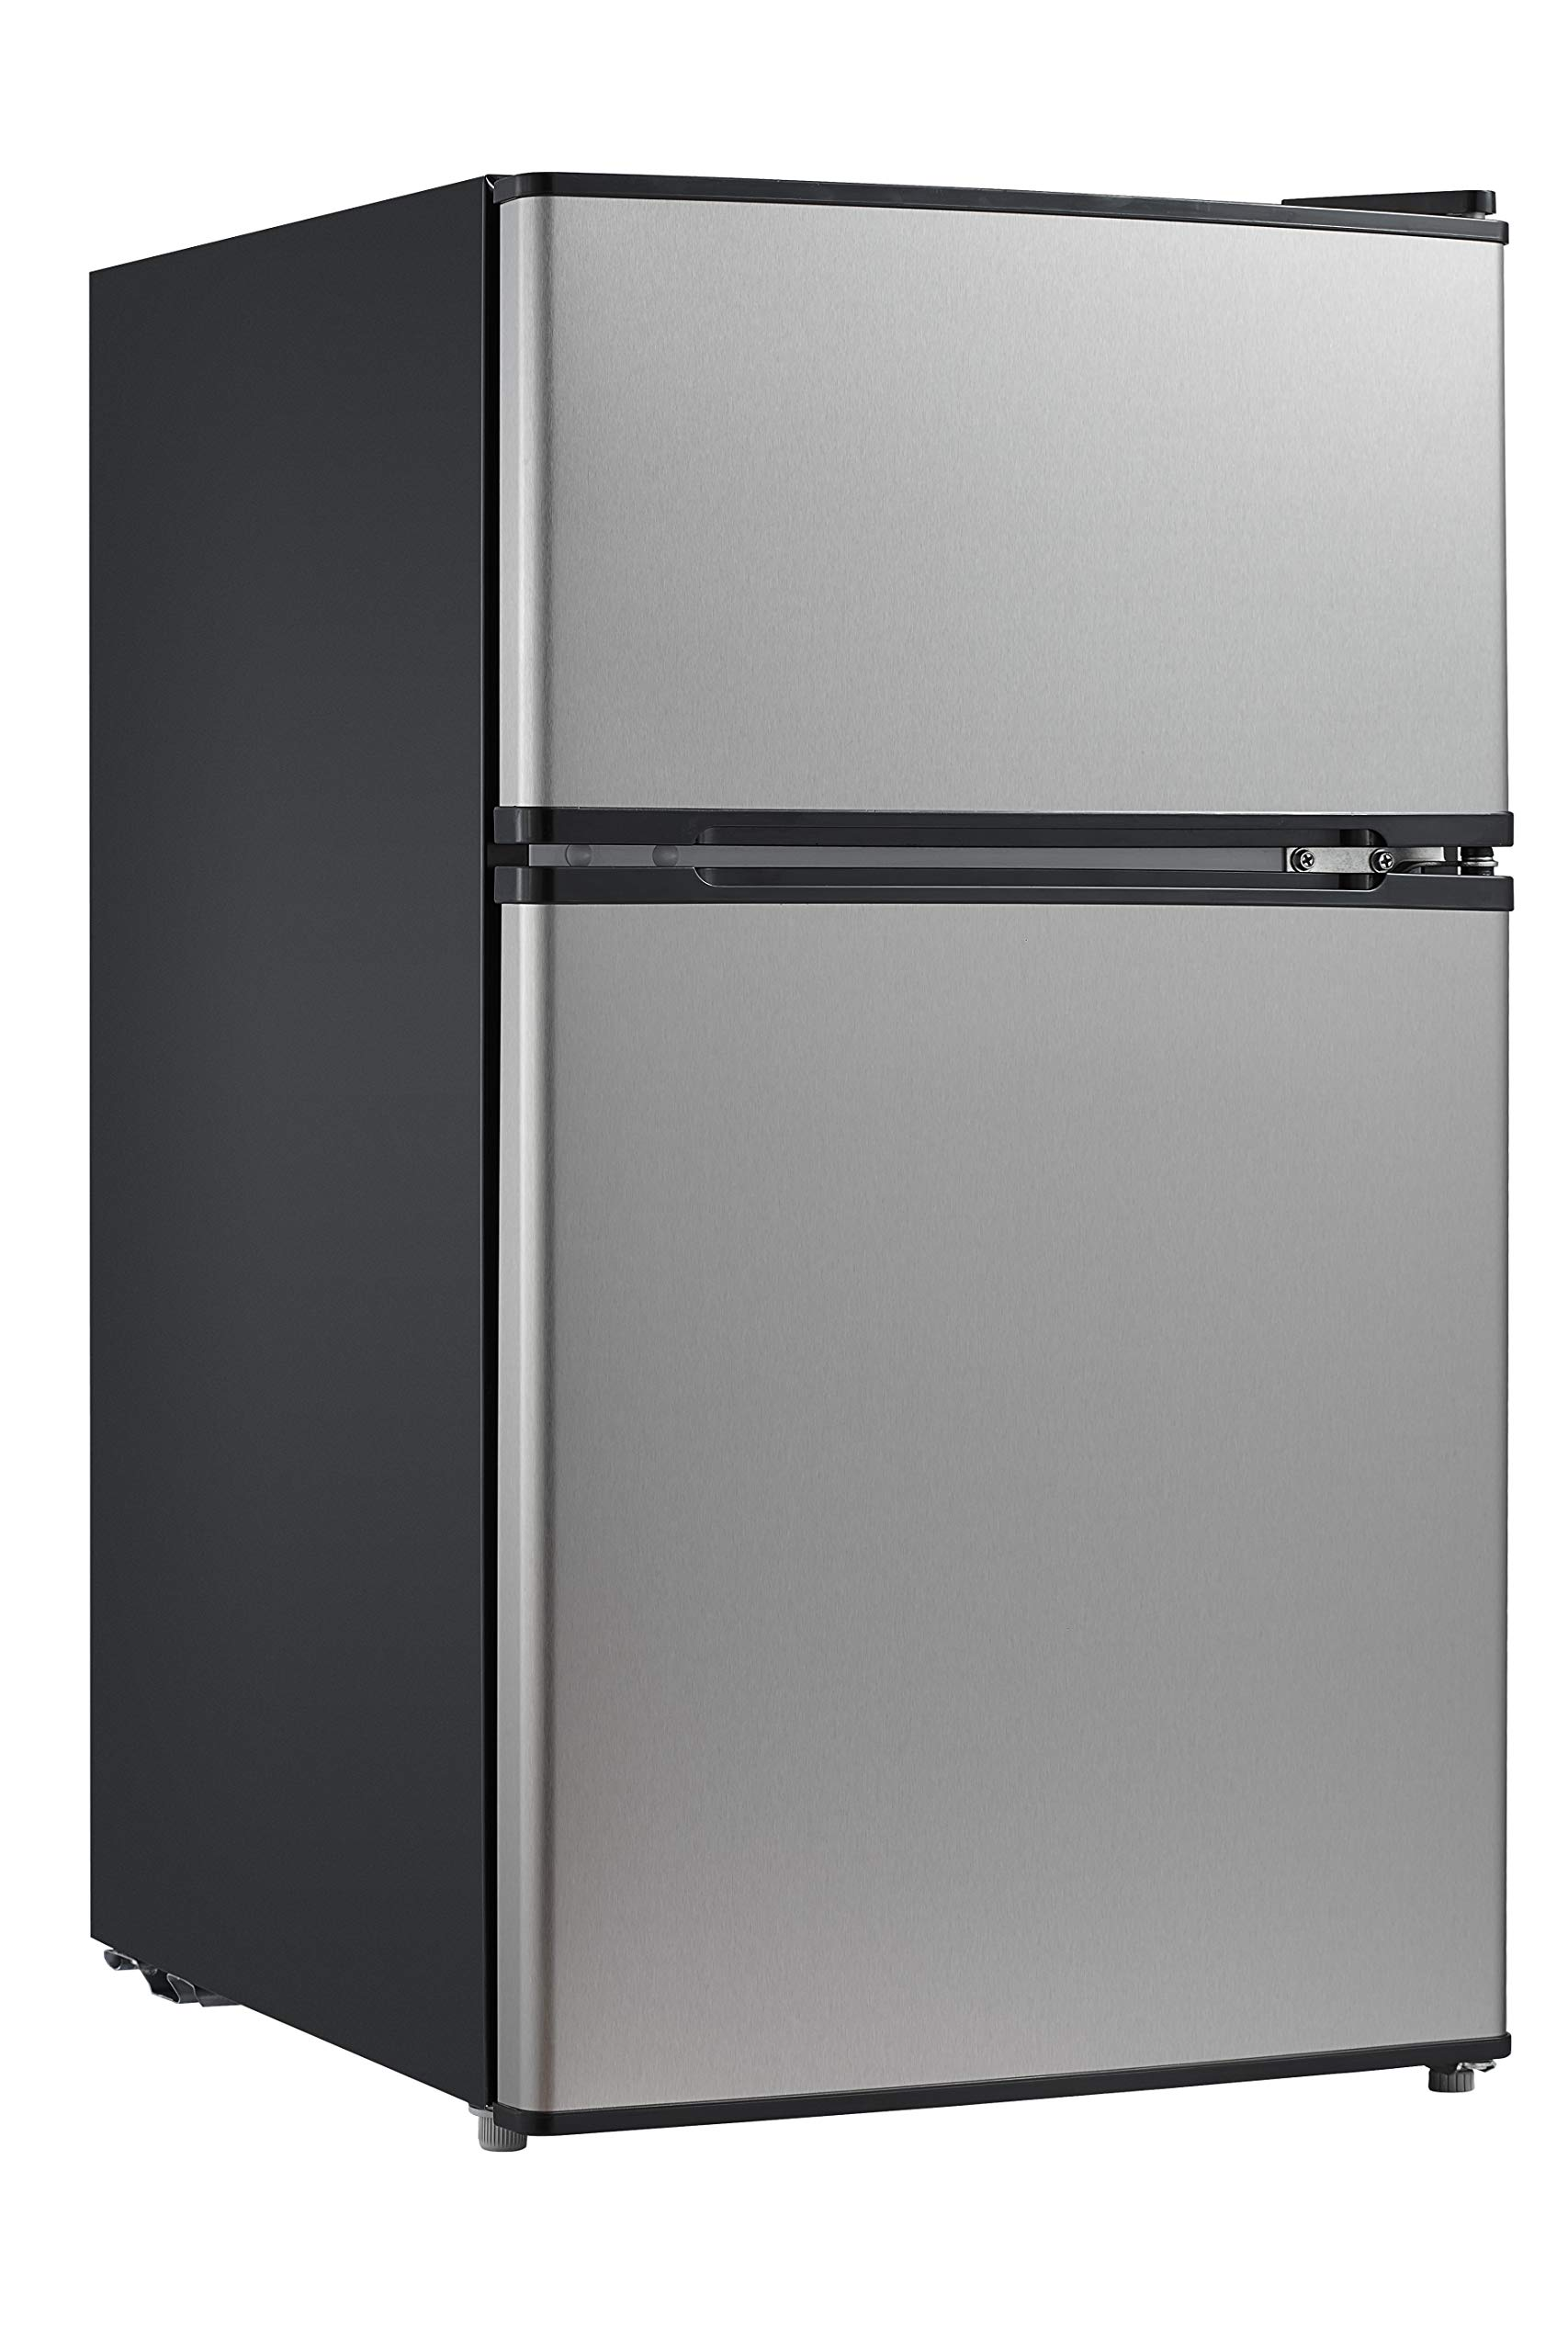 WHD 113FSS1 Freezer Adjustable Refrigerator Stainless